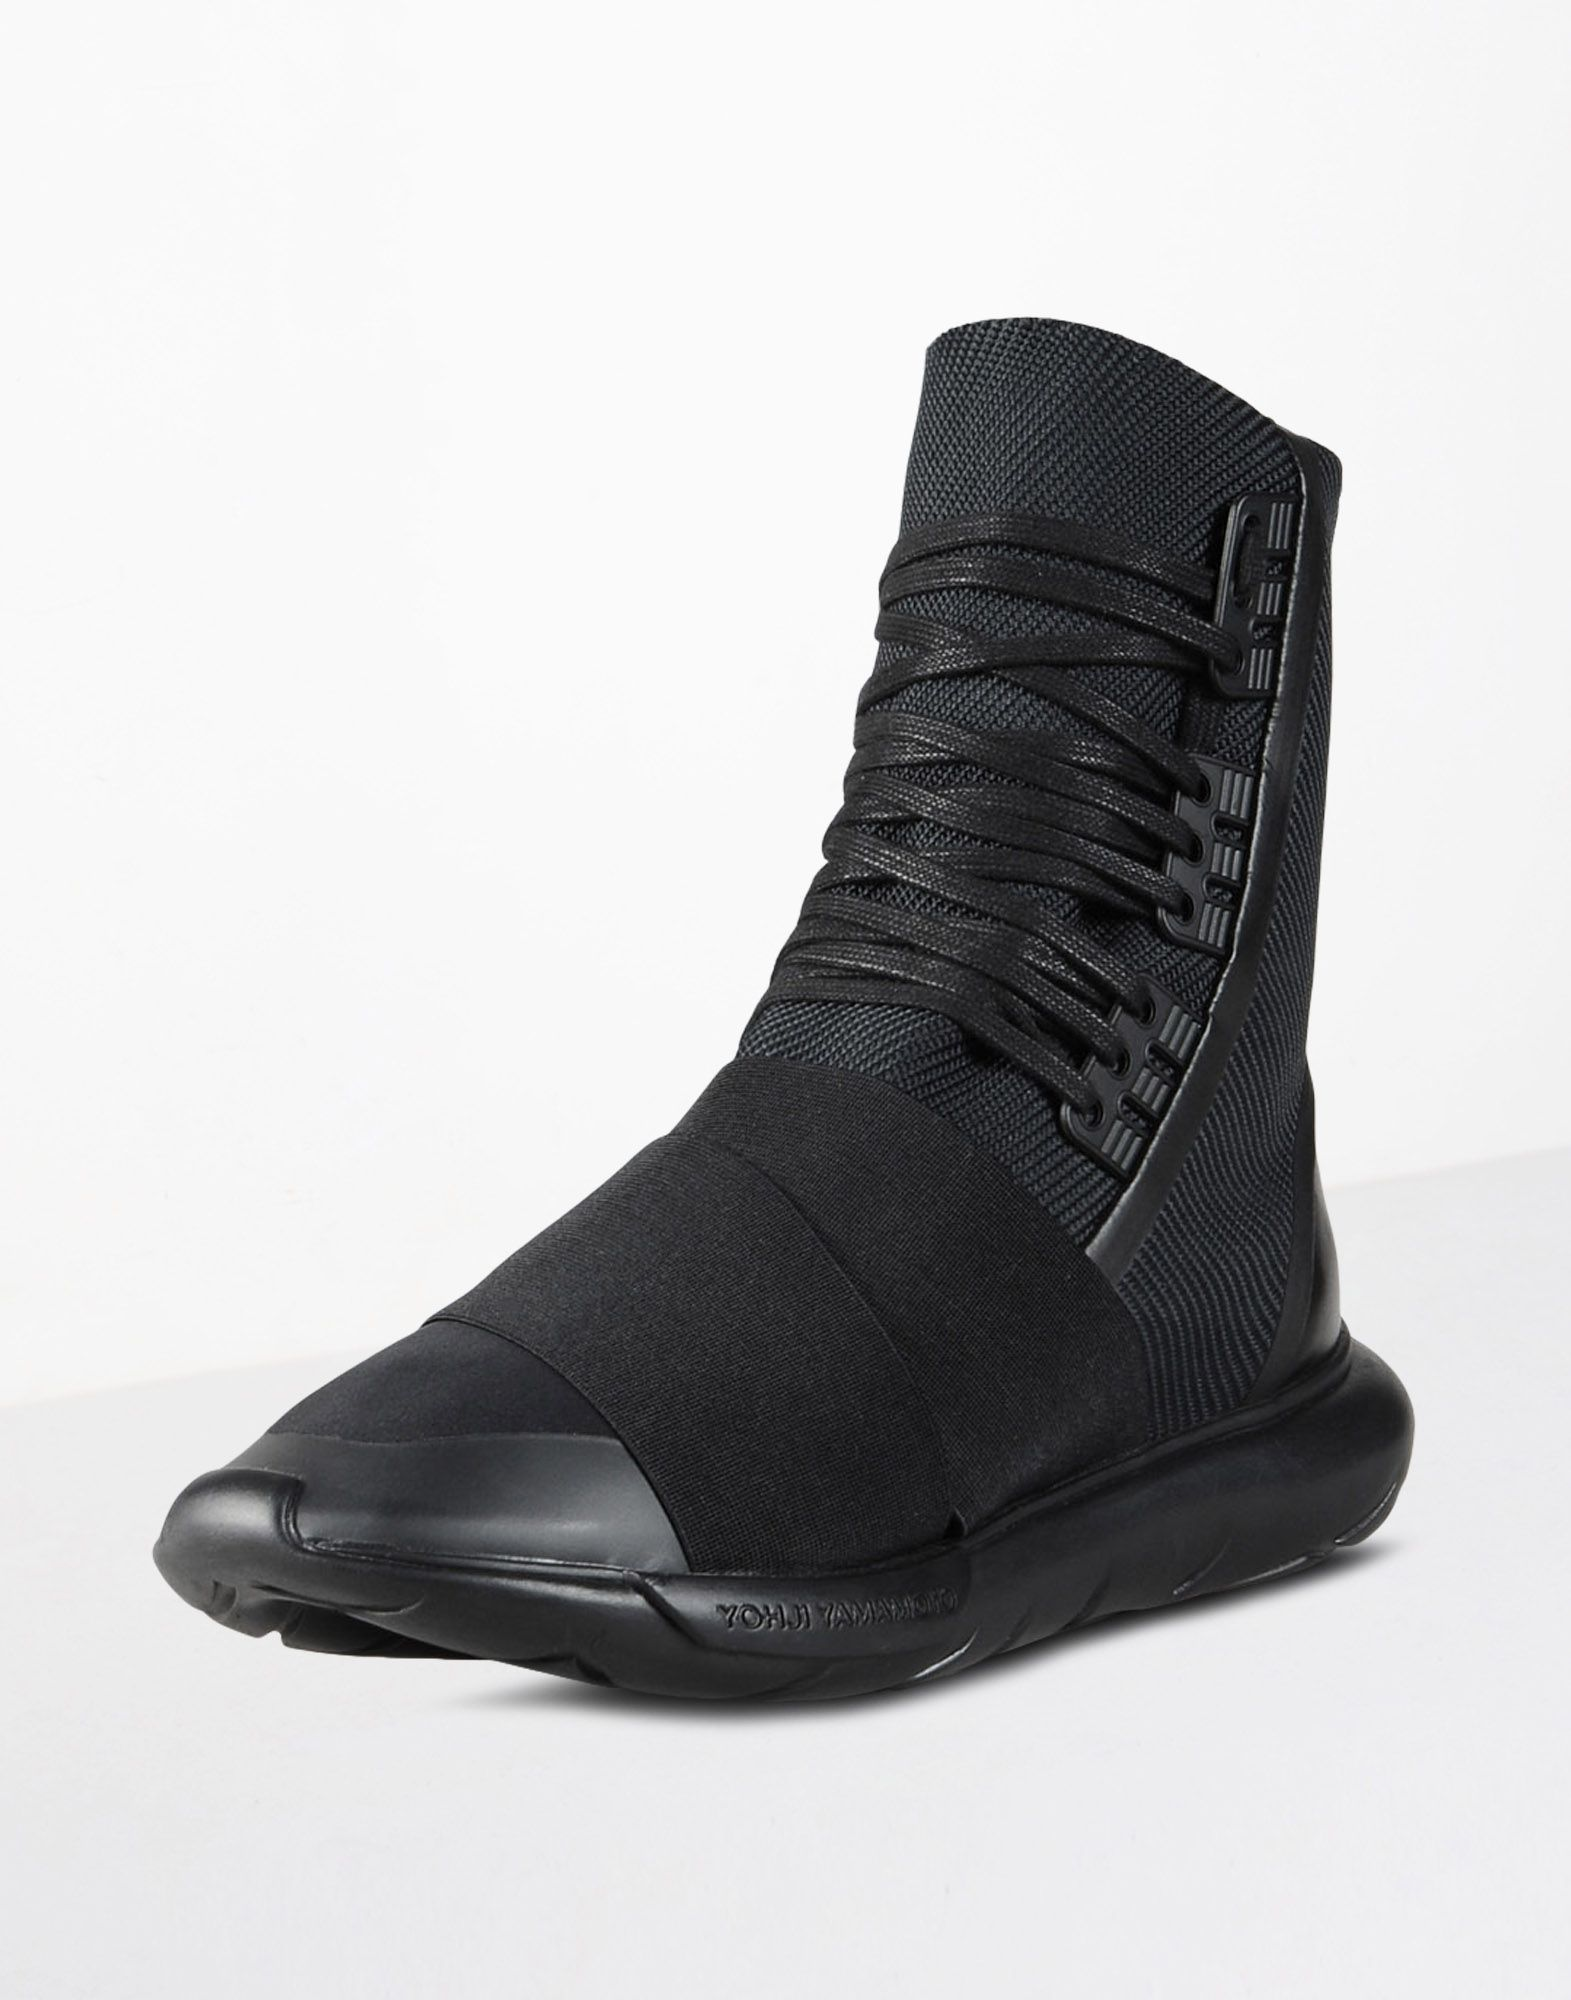 094f4b6c93720 Y-3 QASA BOOT SHOES man Y-3 adidas